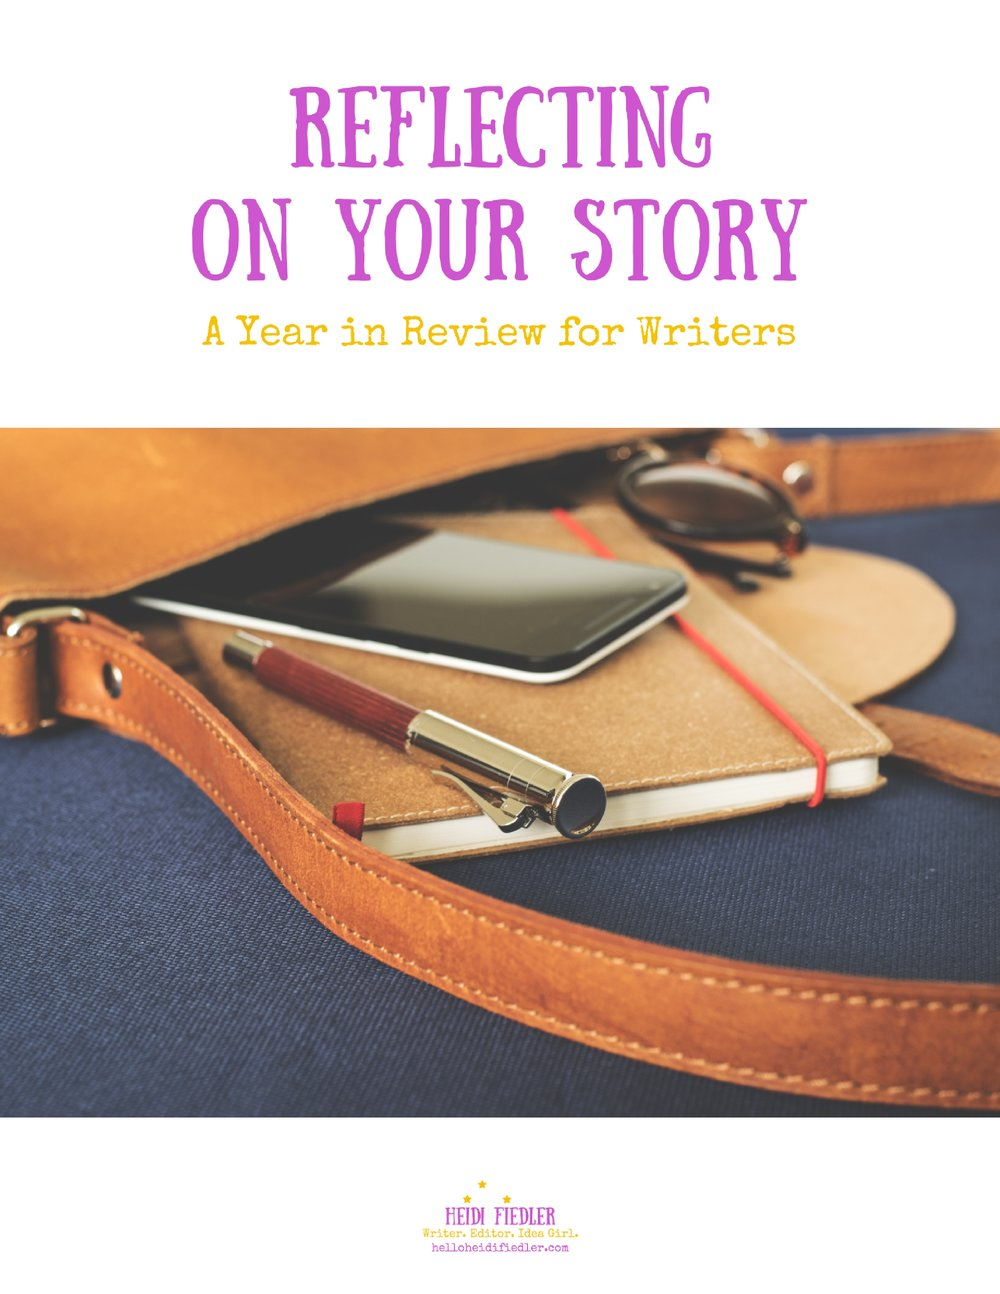 Click through to download a free guide to reviewing your writing life.